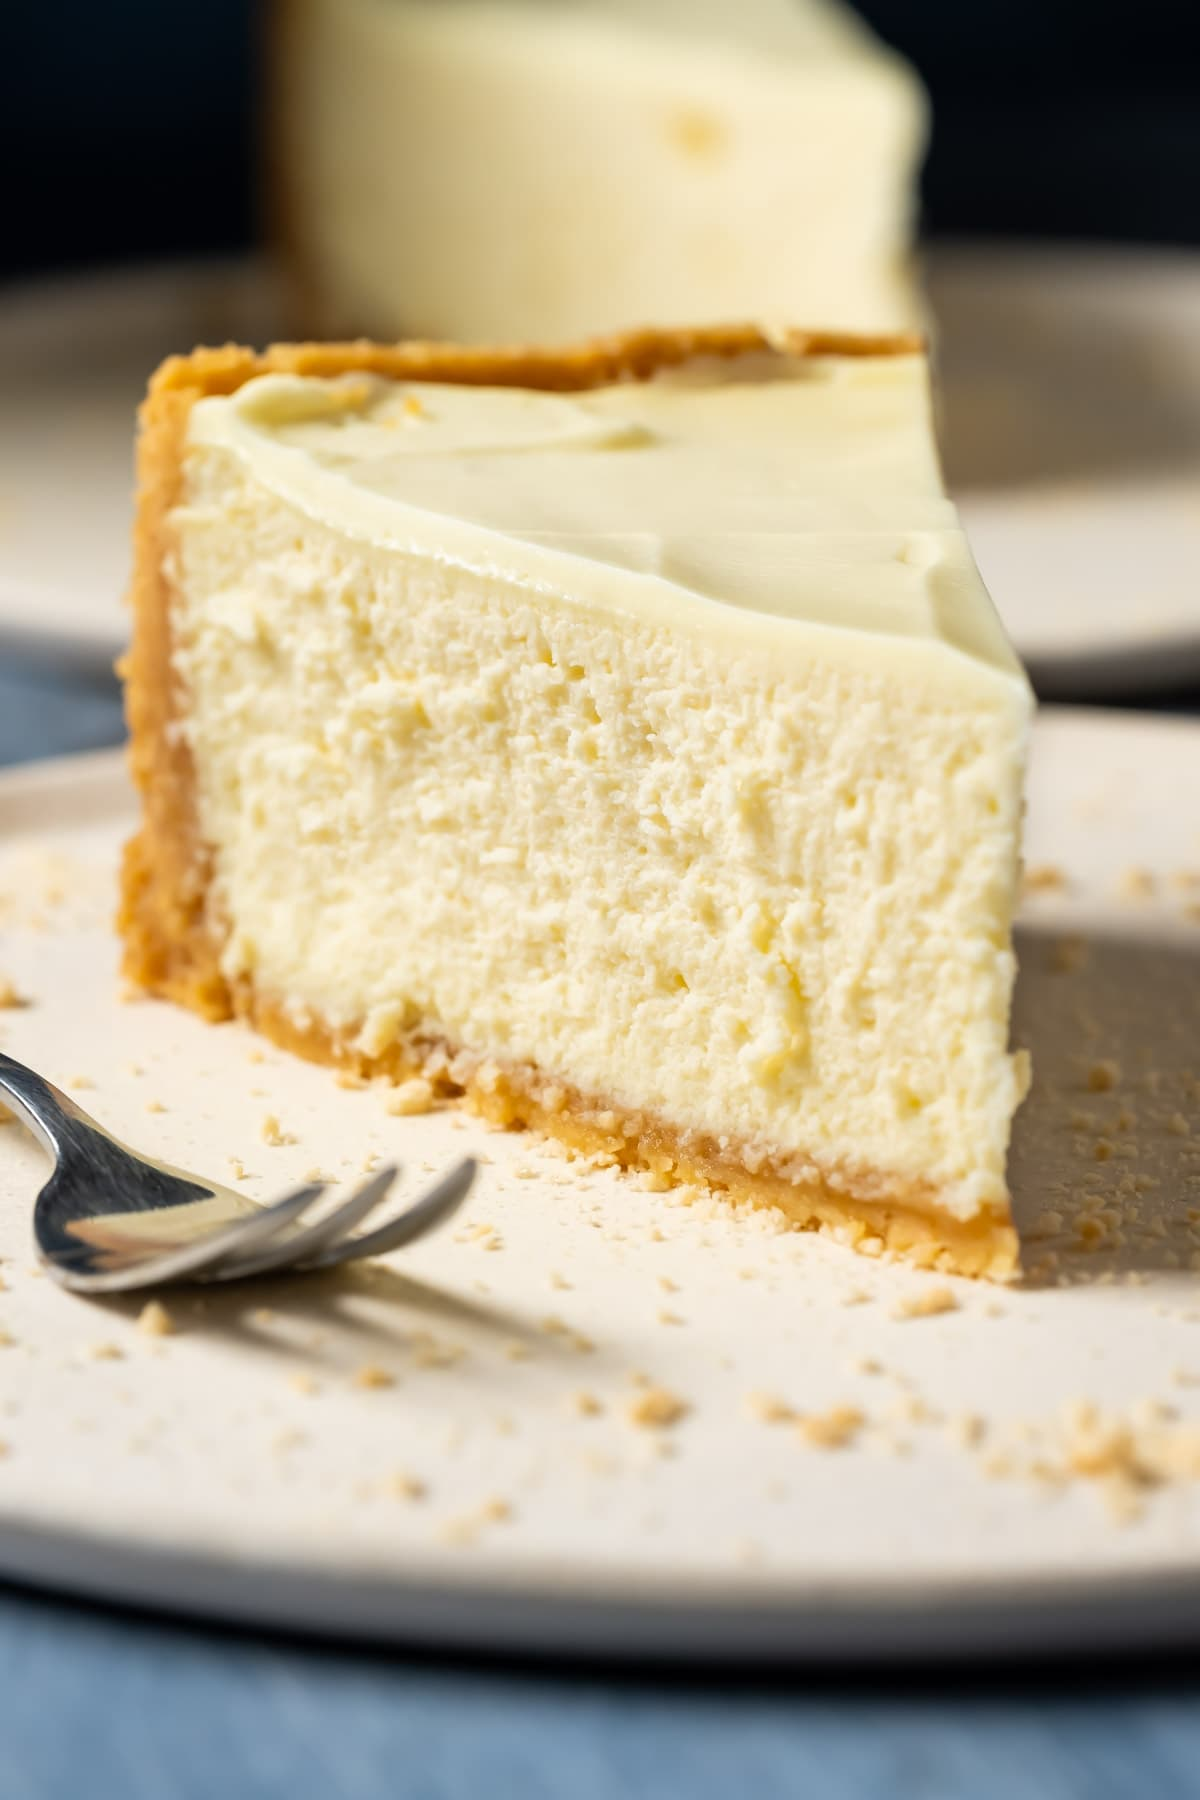 Slice of eggless cheesecake on a white plate with a cake fork.